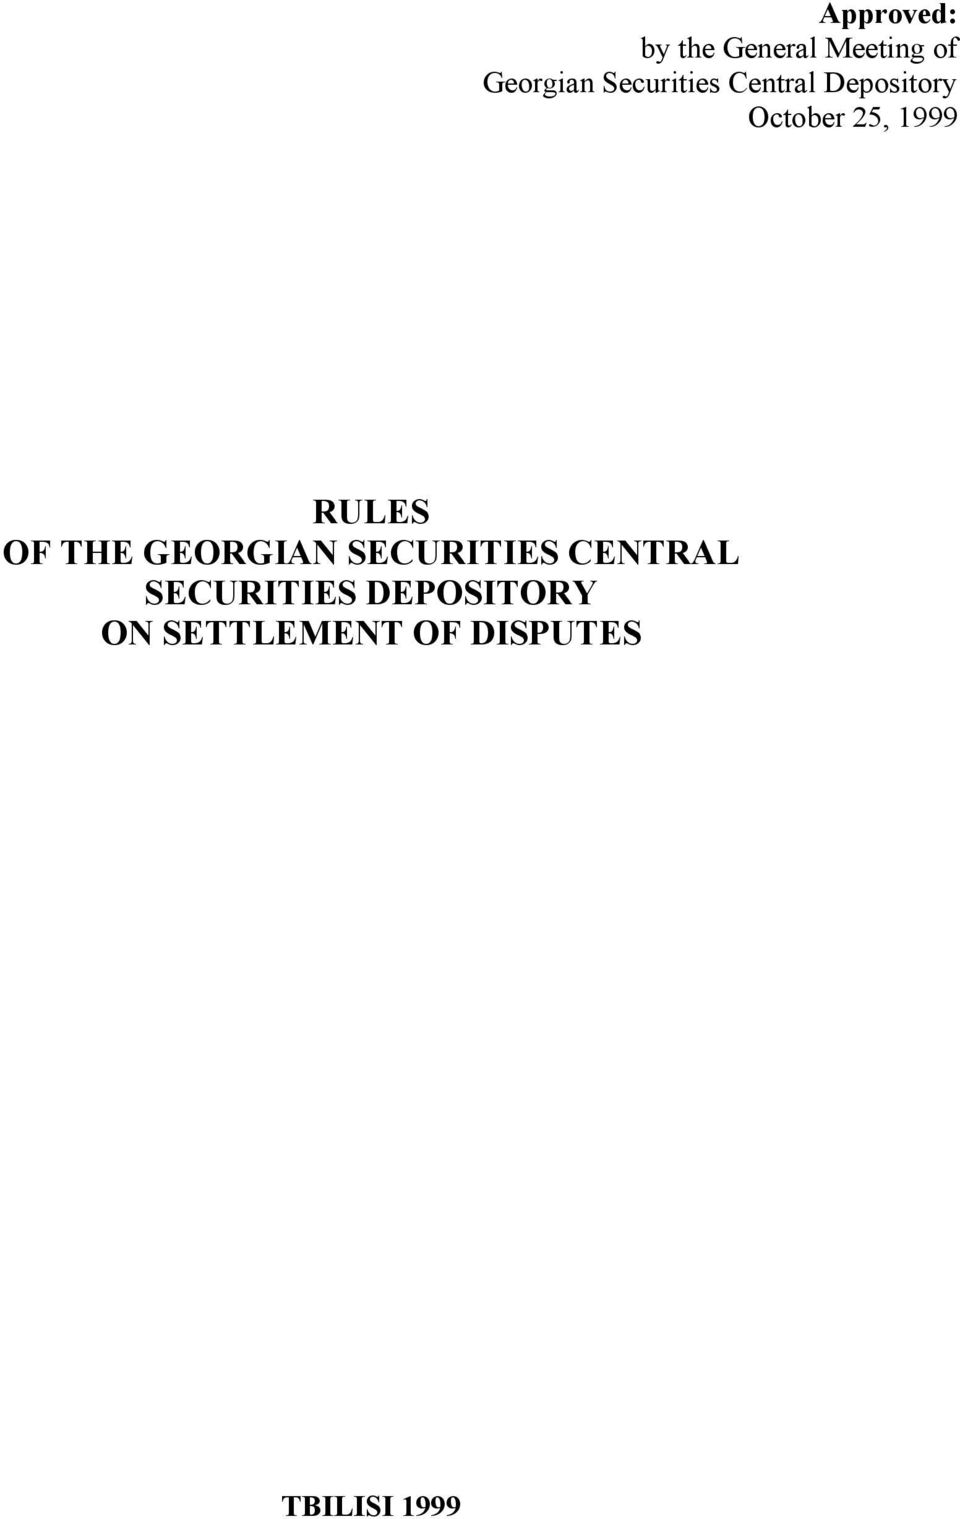 RULES OF THE GEORGIAN SECURITIES CENTRAL